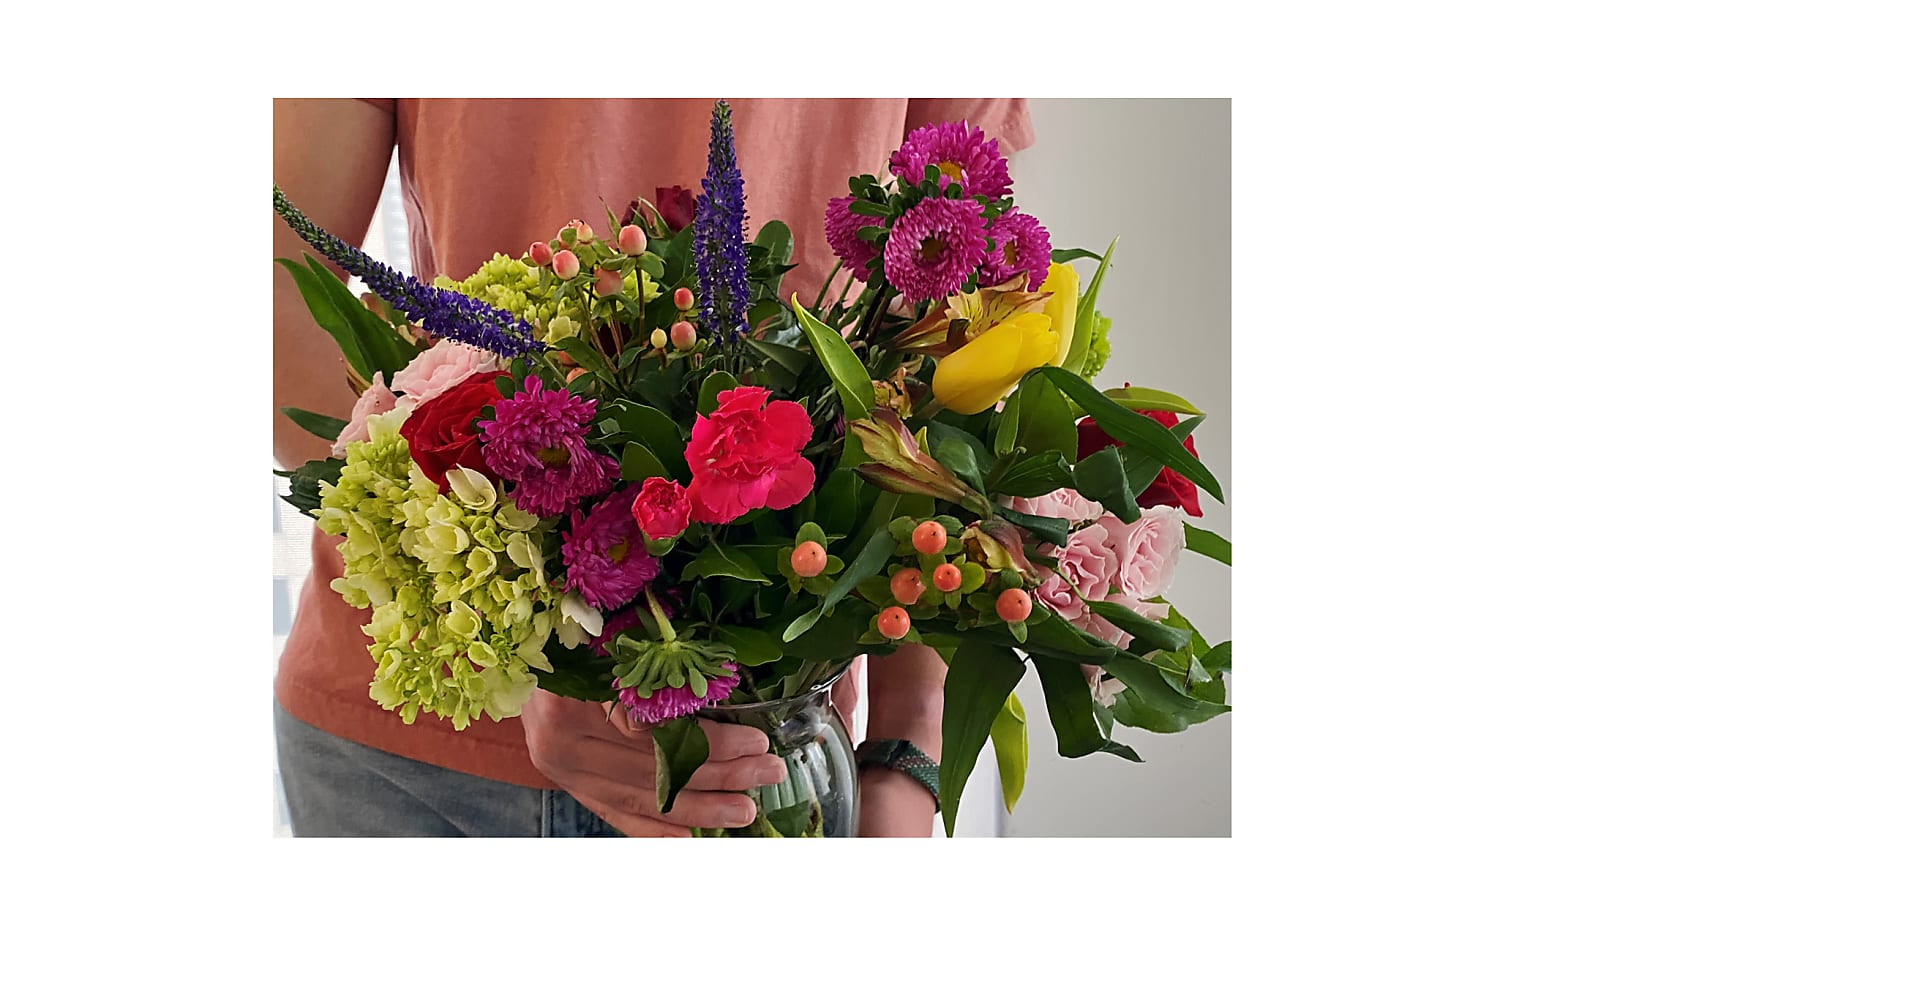 The Tayde Bouquet with St. Jude - Image 3 Of 3